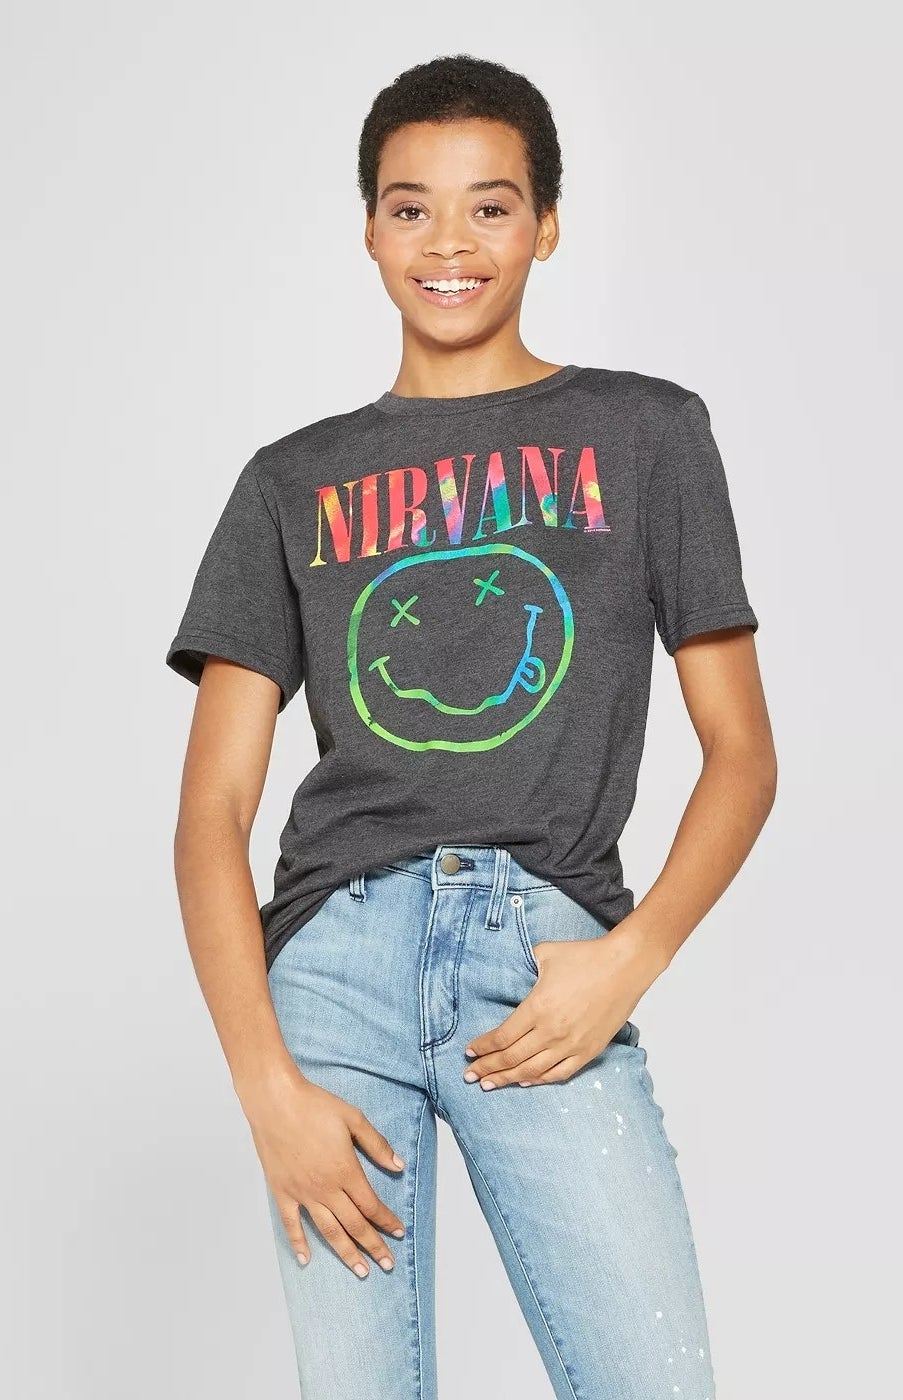 A model wearing a Nirvana T-shirt with a neon smile graphic